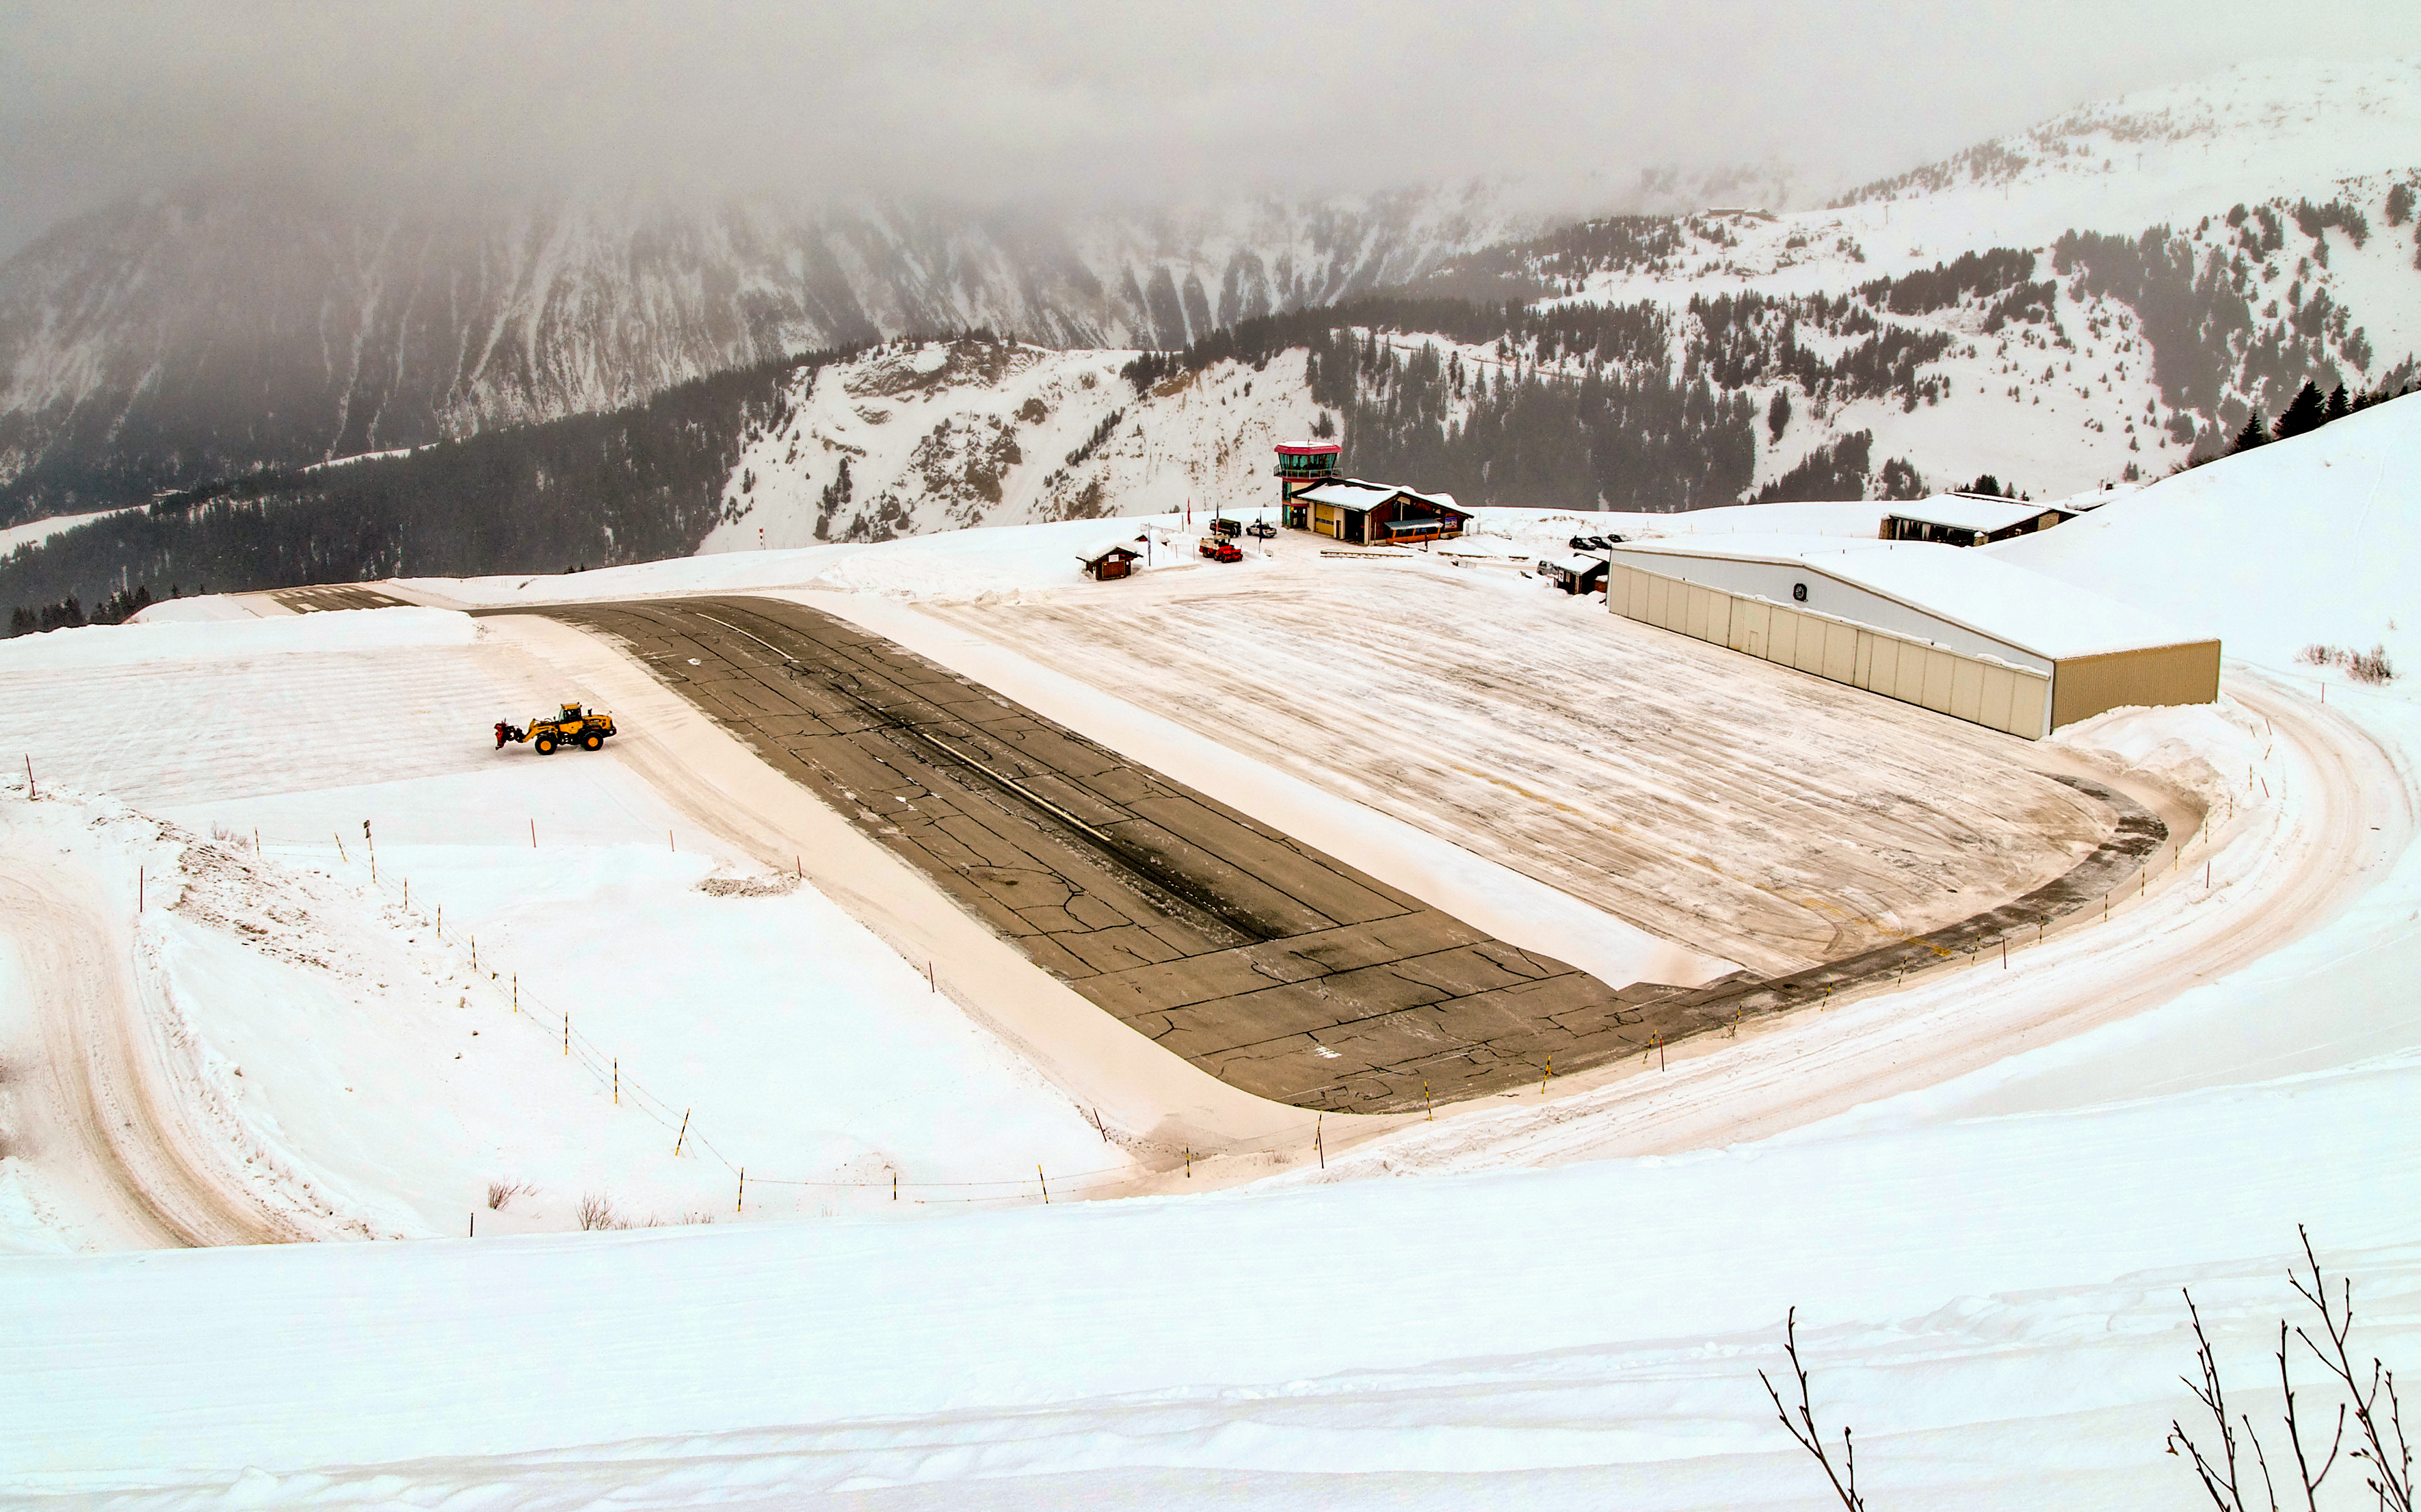 Courchevel altiport in snow - Wiki